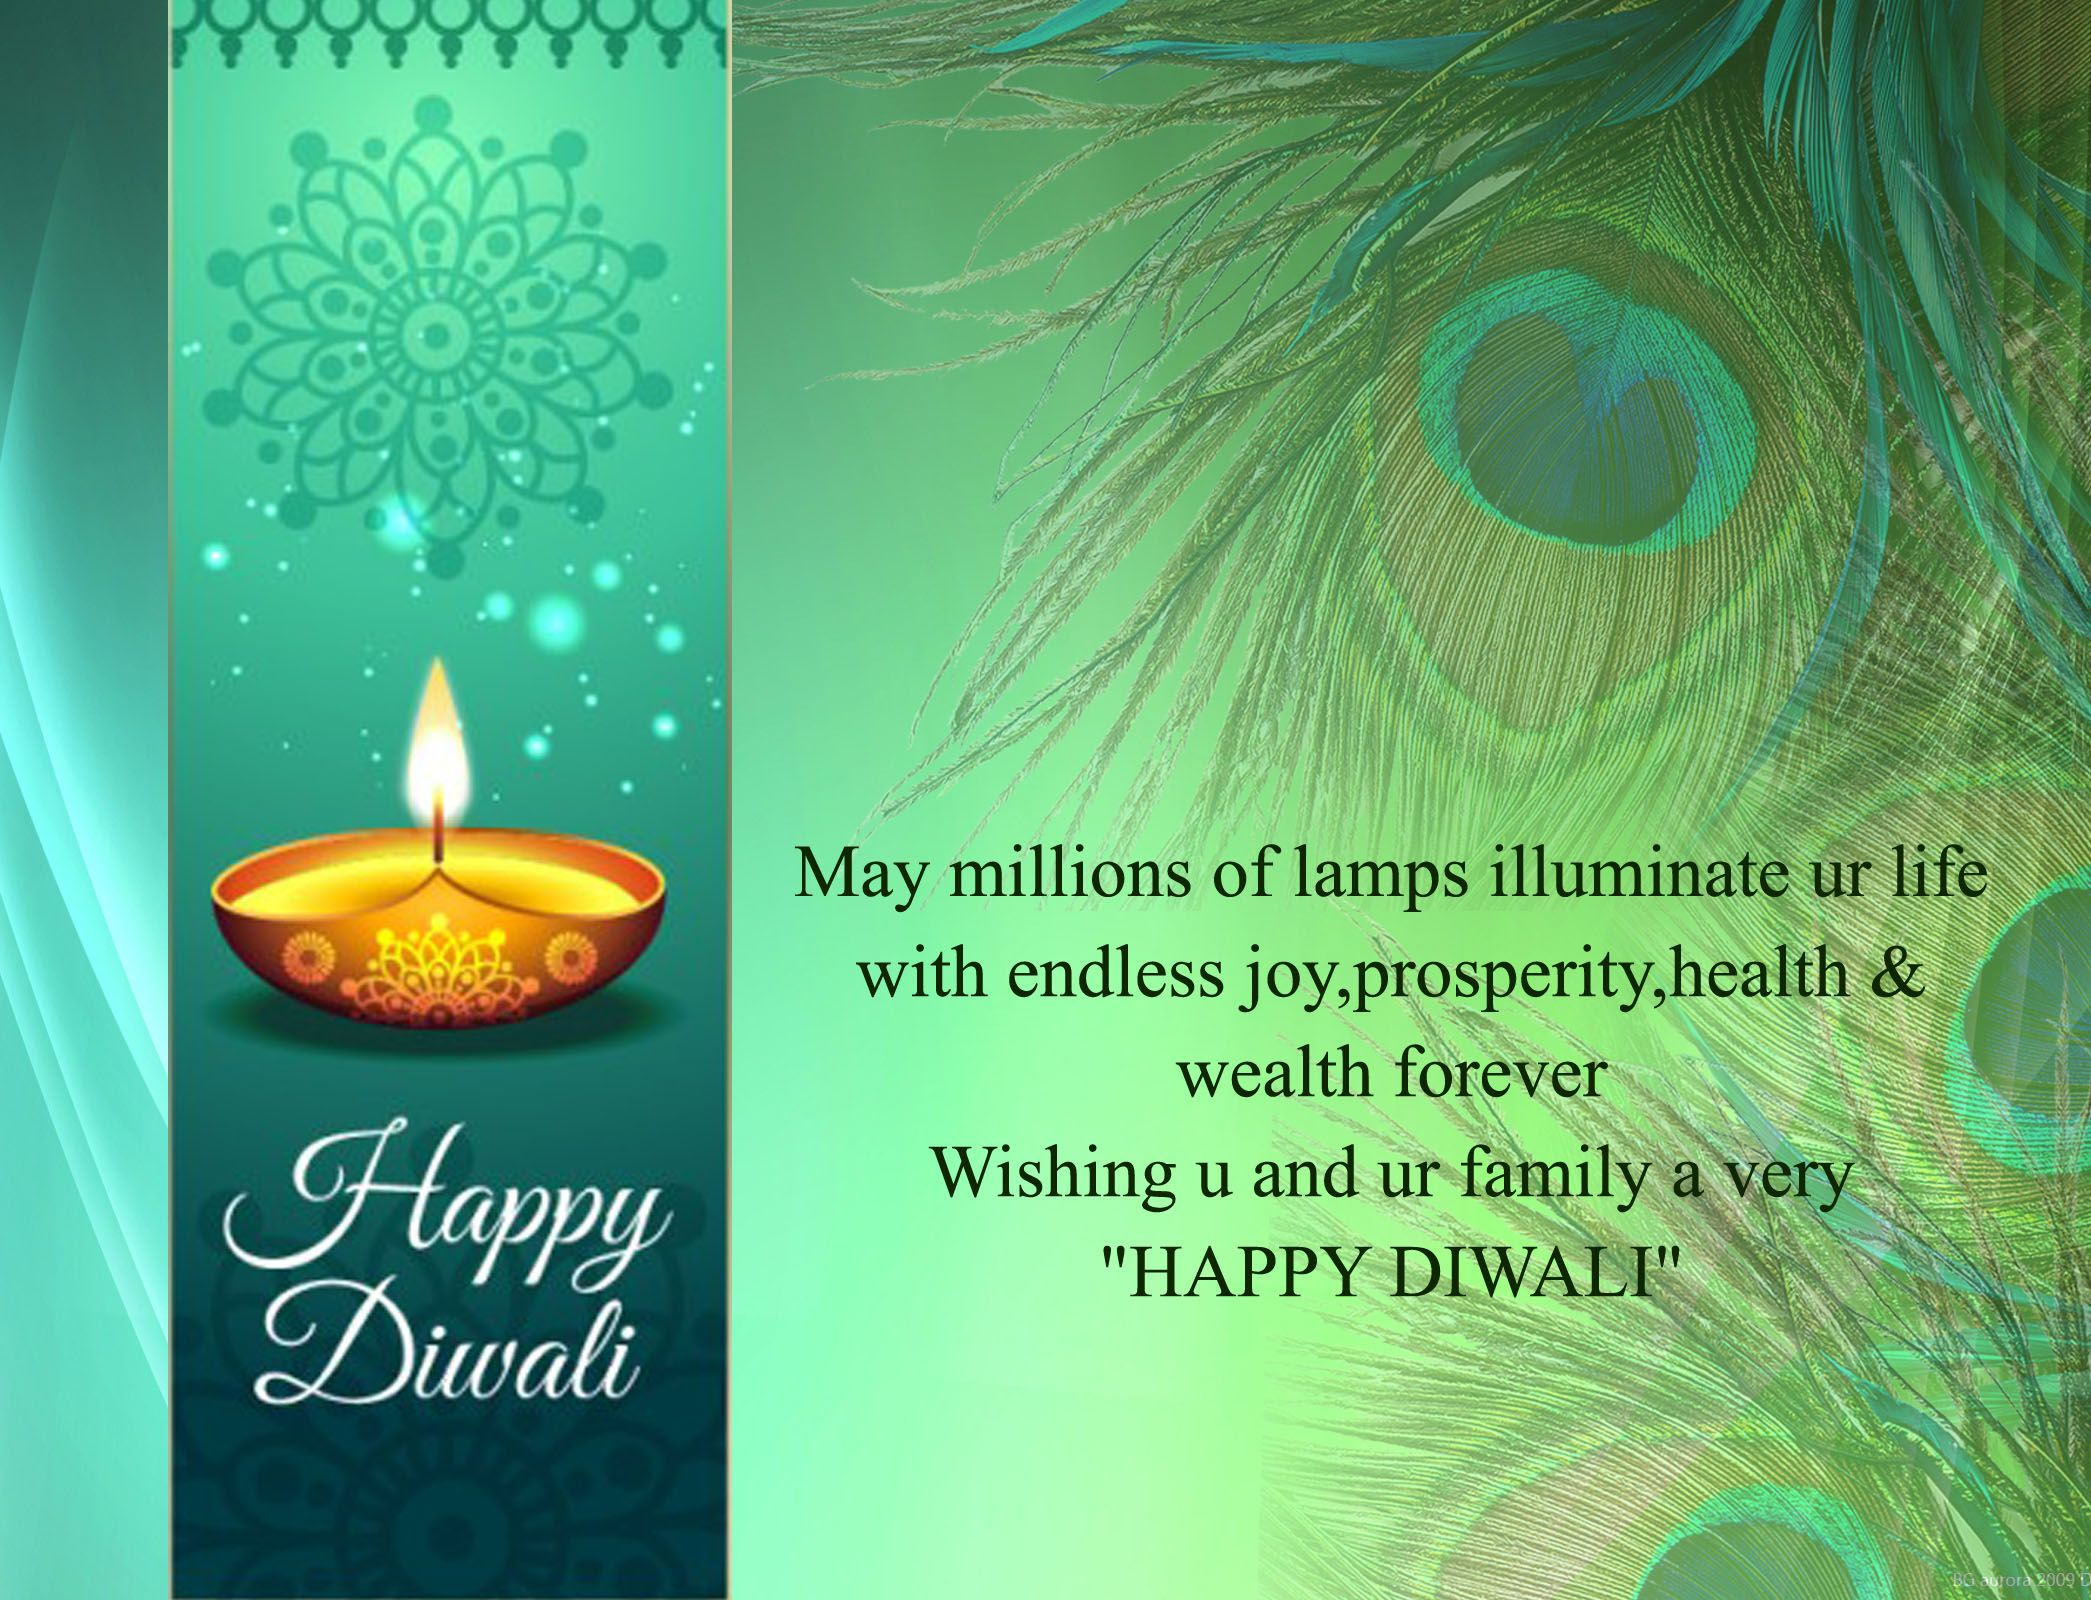 Happy diwali wishing quote image festival images pinterest happy diwali wishing quote image festival images pinterest happy diwali diwali and quotes images kristyandbryce Image collections